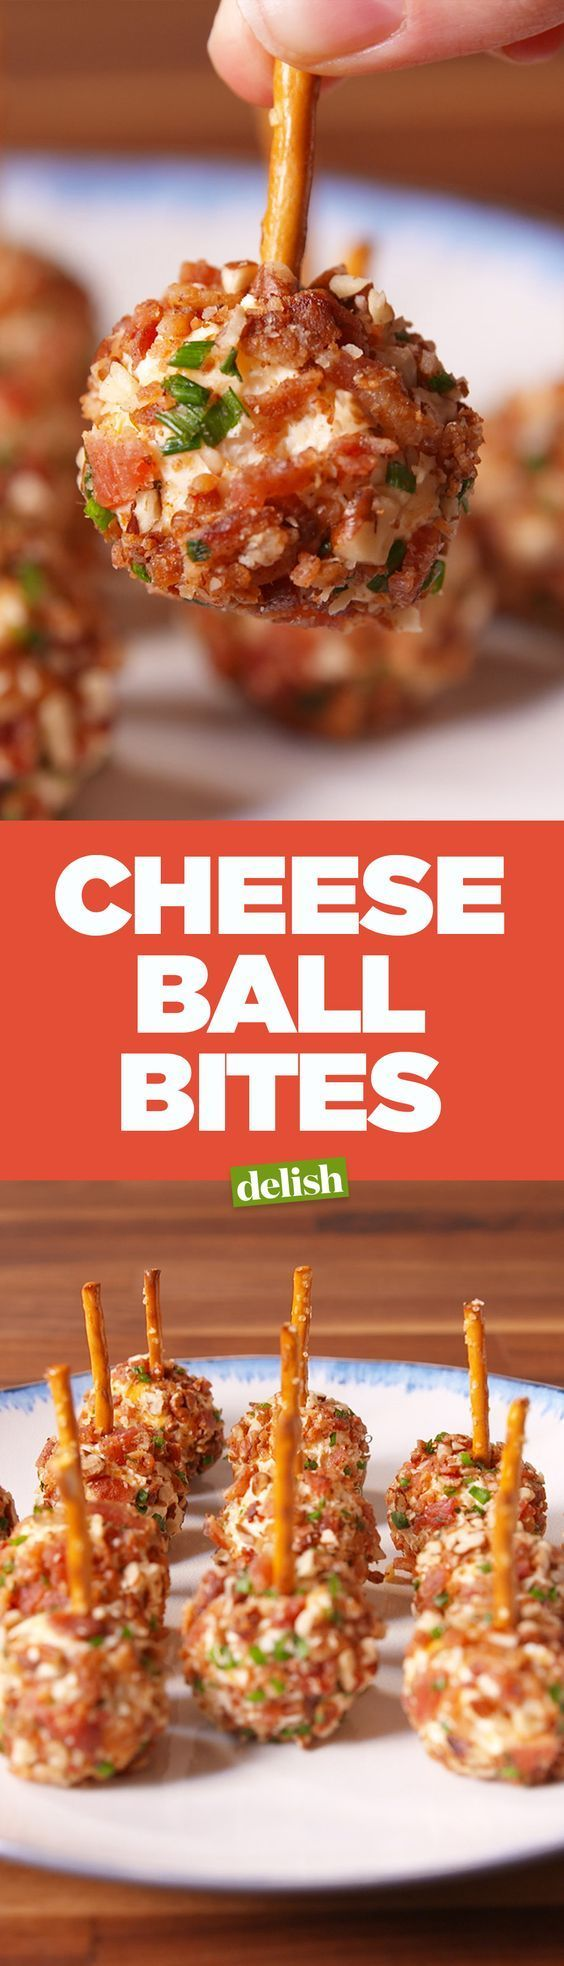 These cheese ball bites > a boring cheese platter. Get the recipe on Delish.com.